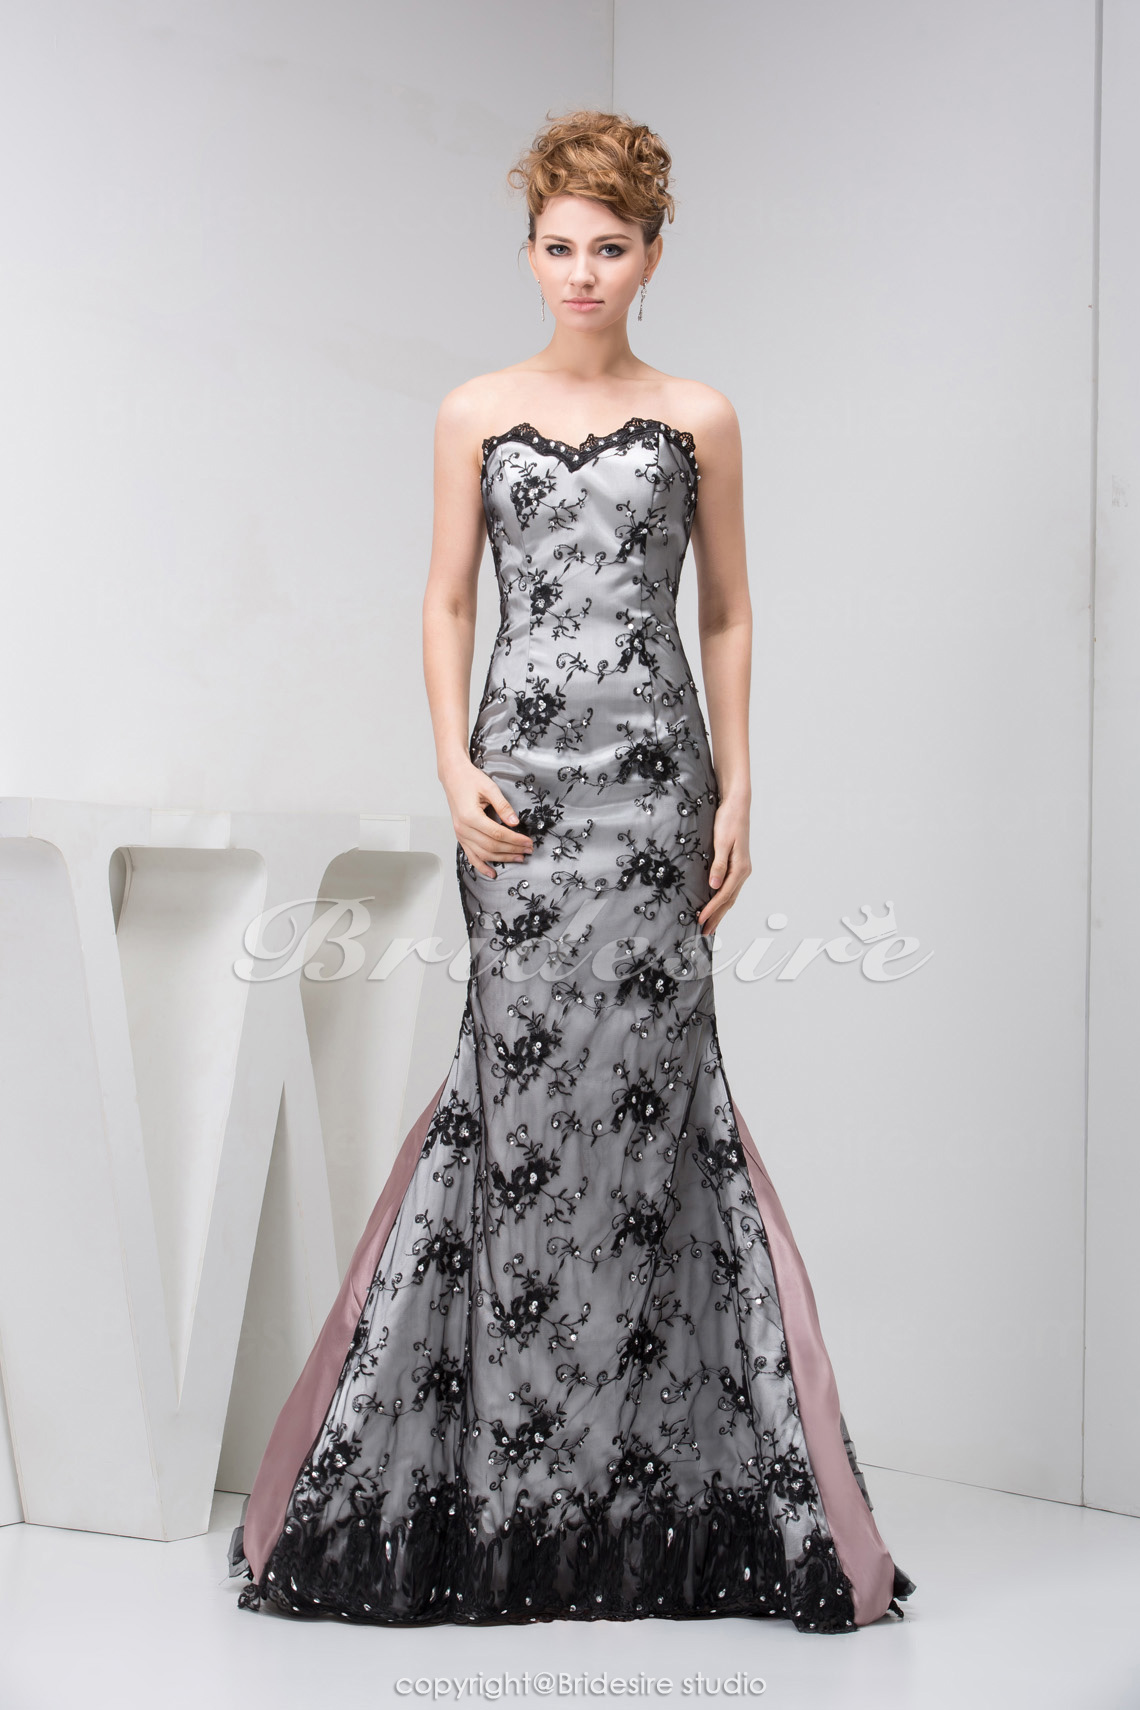 A-line Sweetheart Floor-length Sleeveless Lace Dress